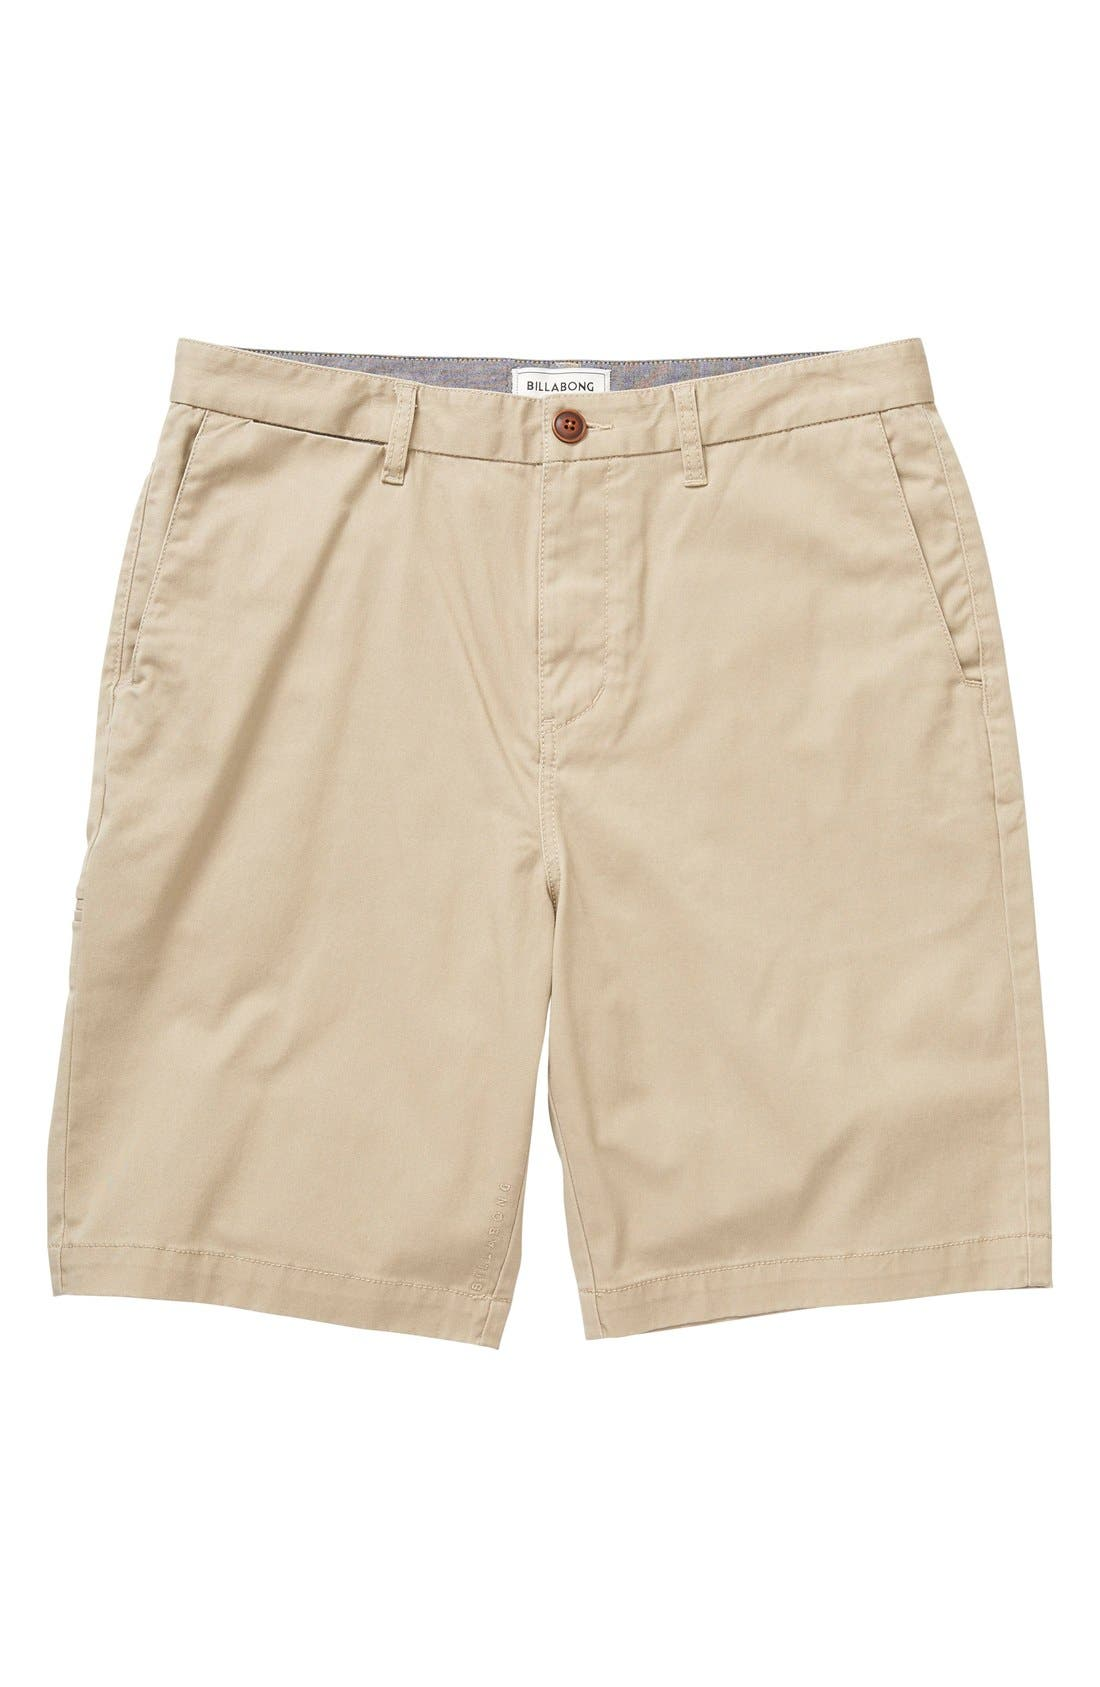 Alternate Image 1 Selected - Billabong 'Carter' Cotton Twill Shorts (Big Boys)